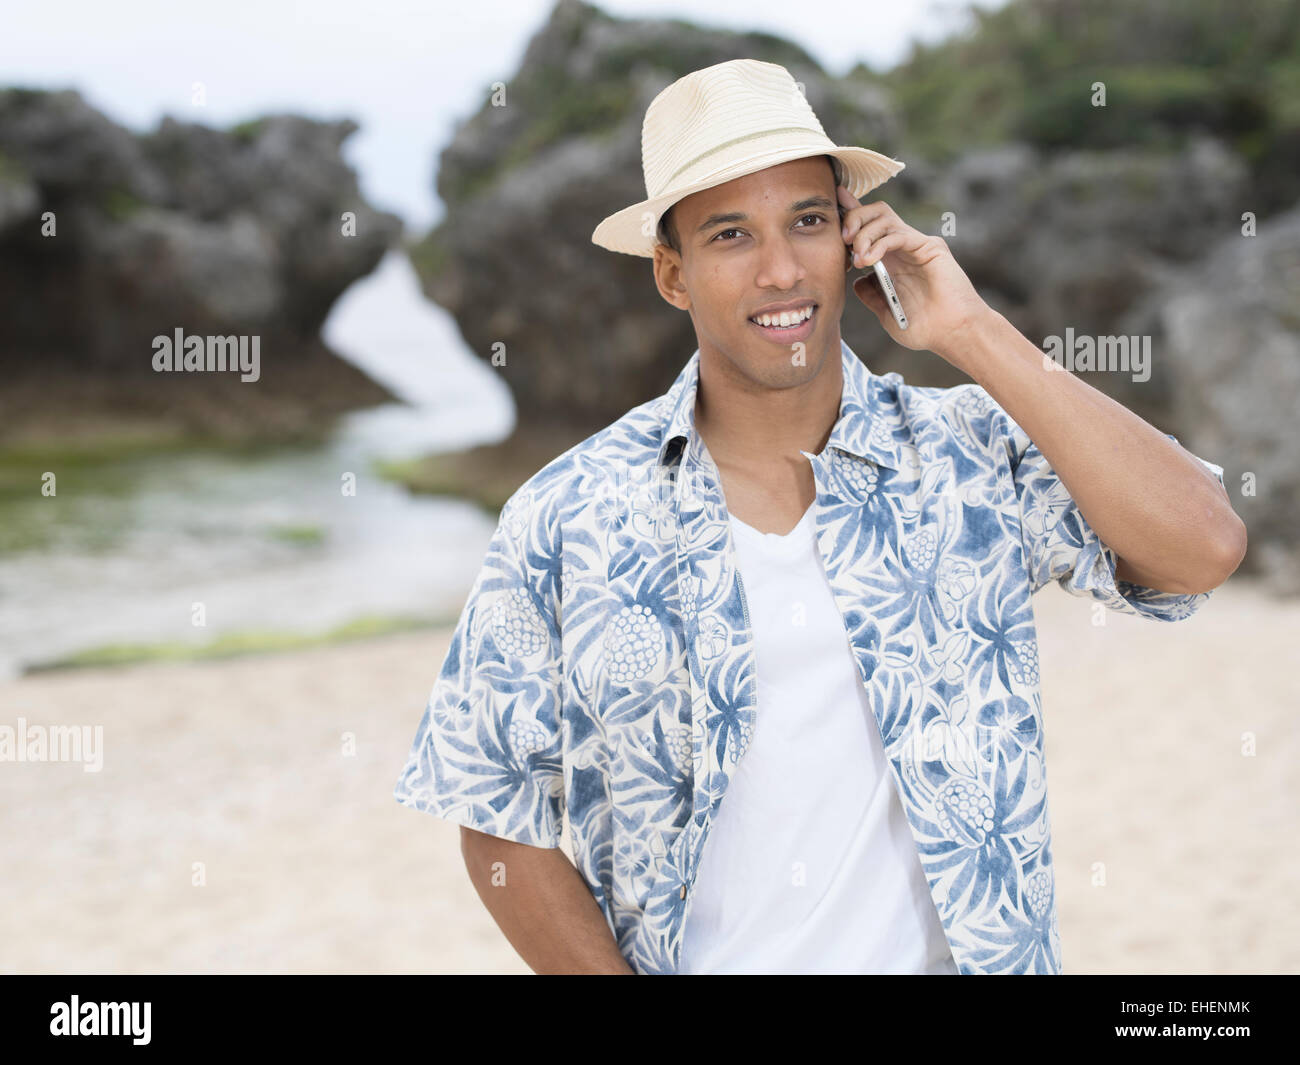 Man calling / telephoning with Apple iphone 6 smartphone while at the beach - Stock Image